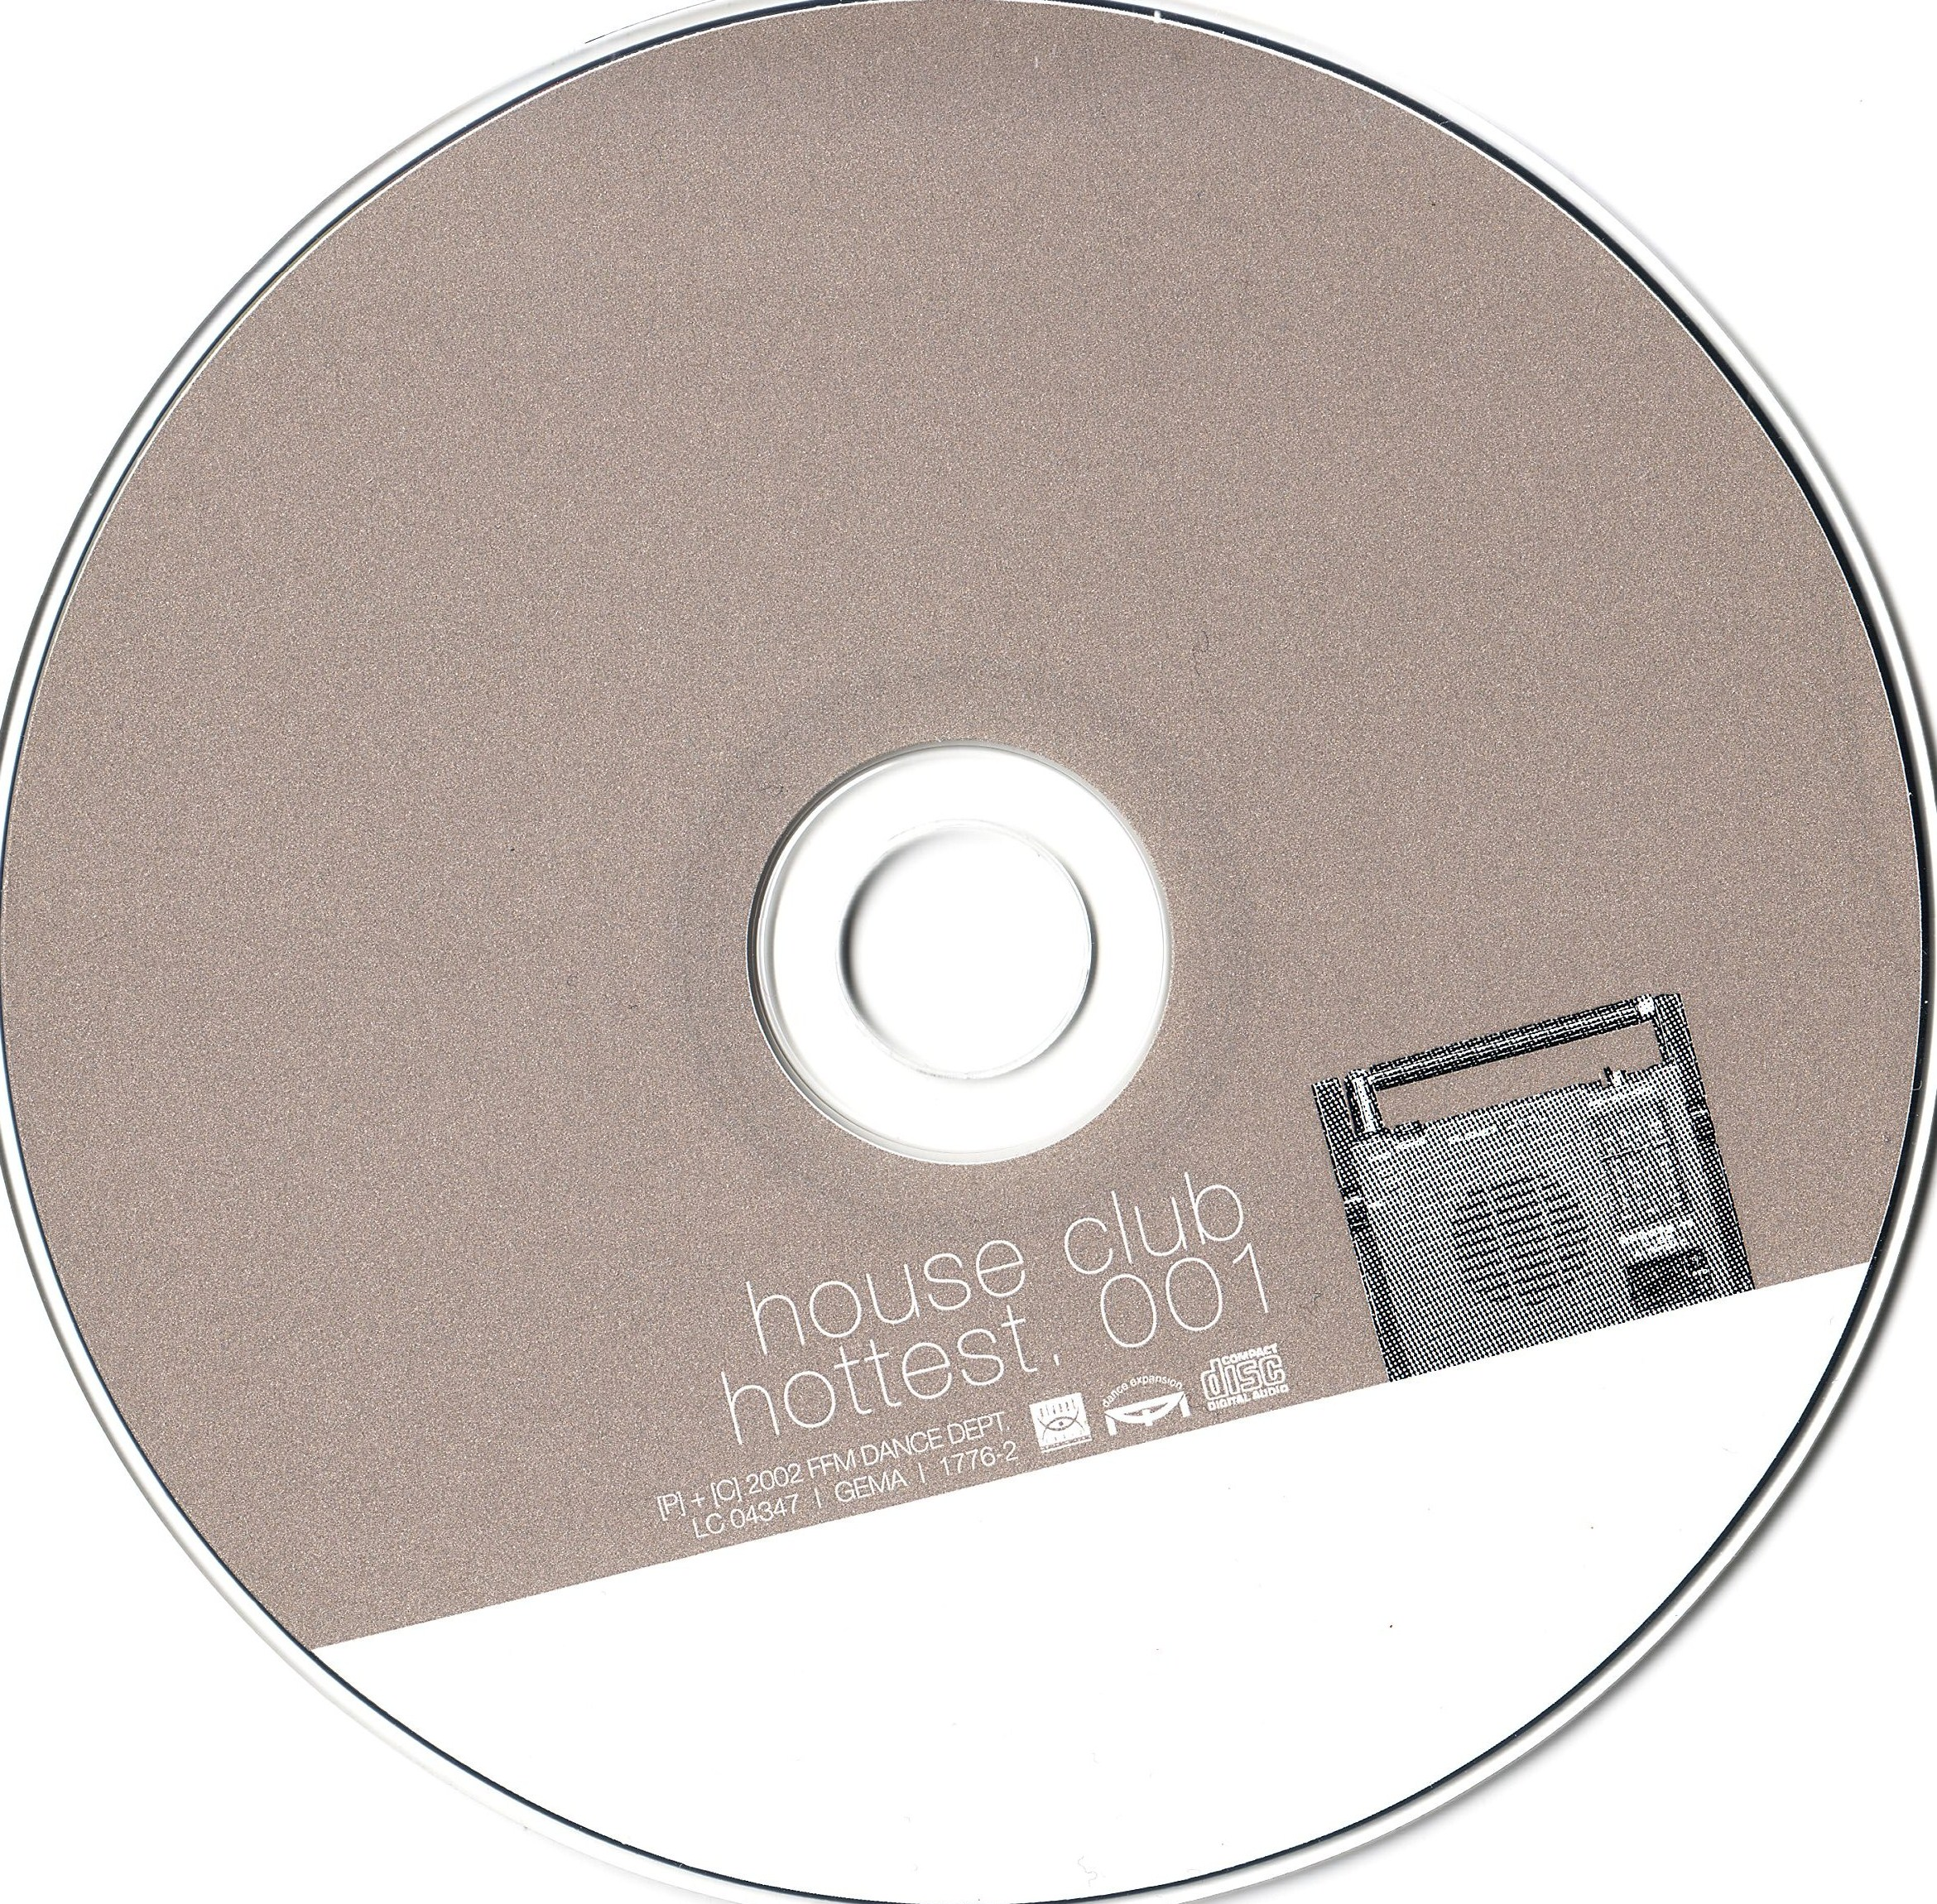 House Club Hottest Vol.01 - CD